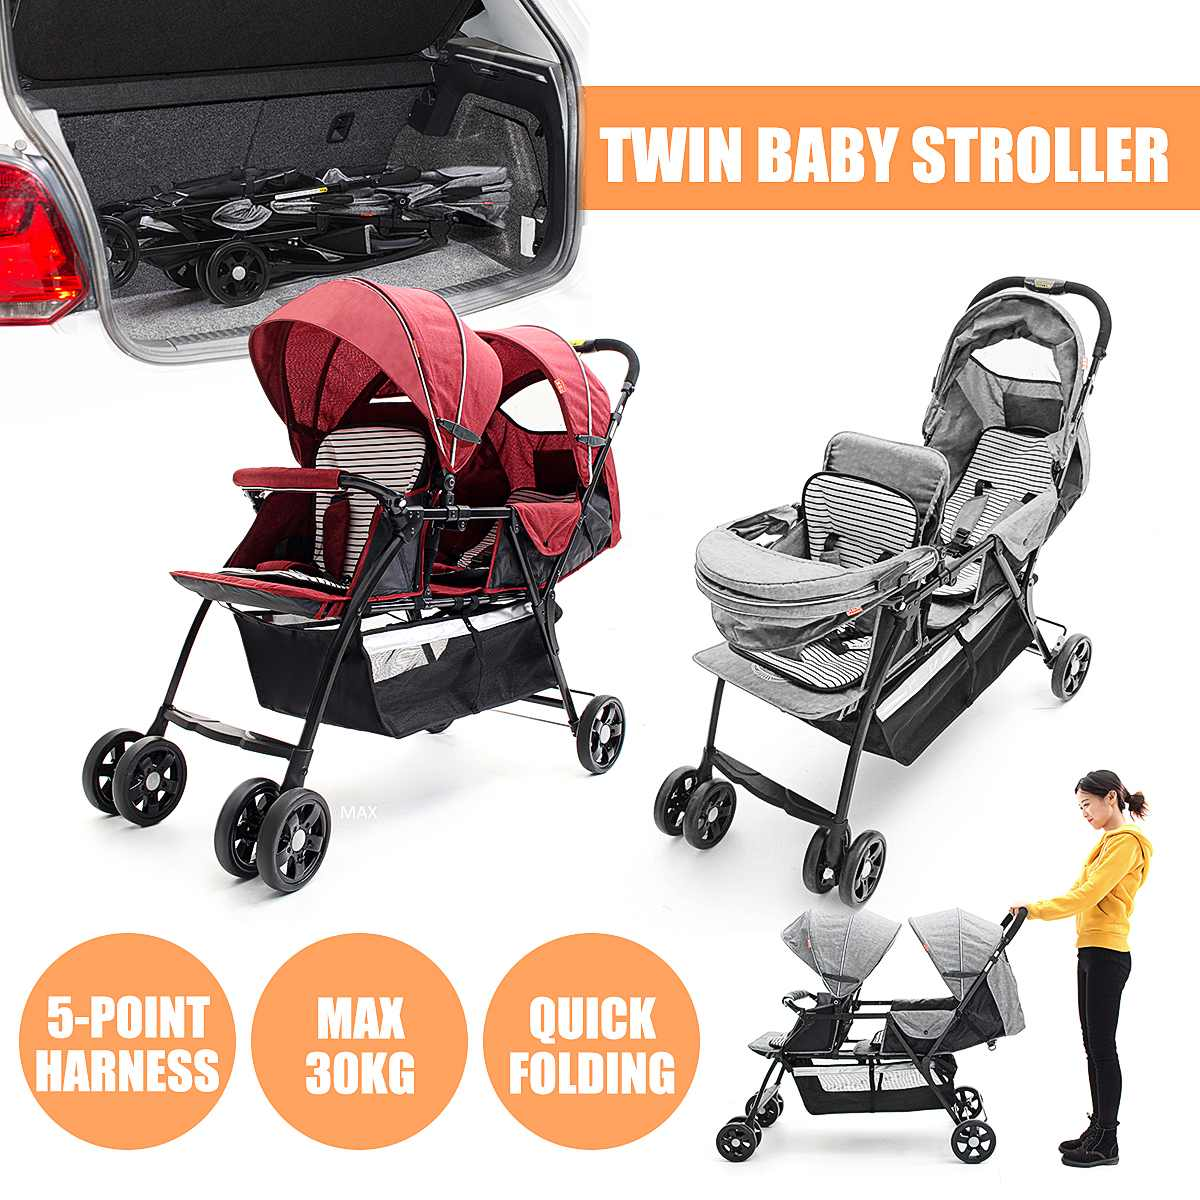 Folding Twin Baby Strollers Lightweight Double 2 Seat Twins Baby Trolley Front And Back Tandem Stroller Car Kid Can Lie Flat image